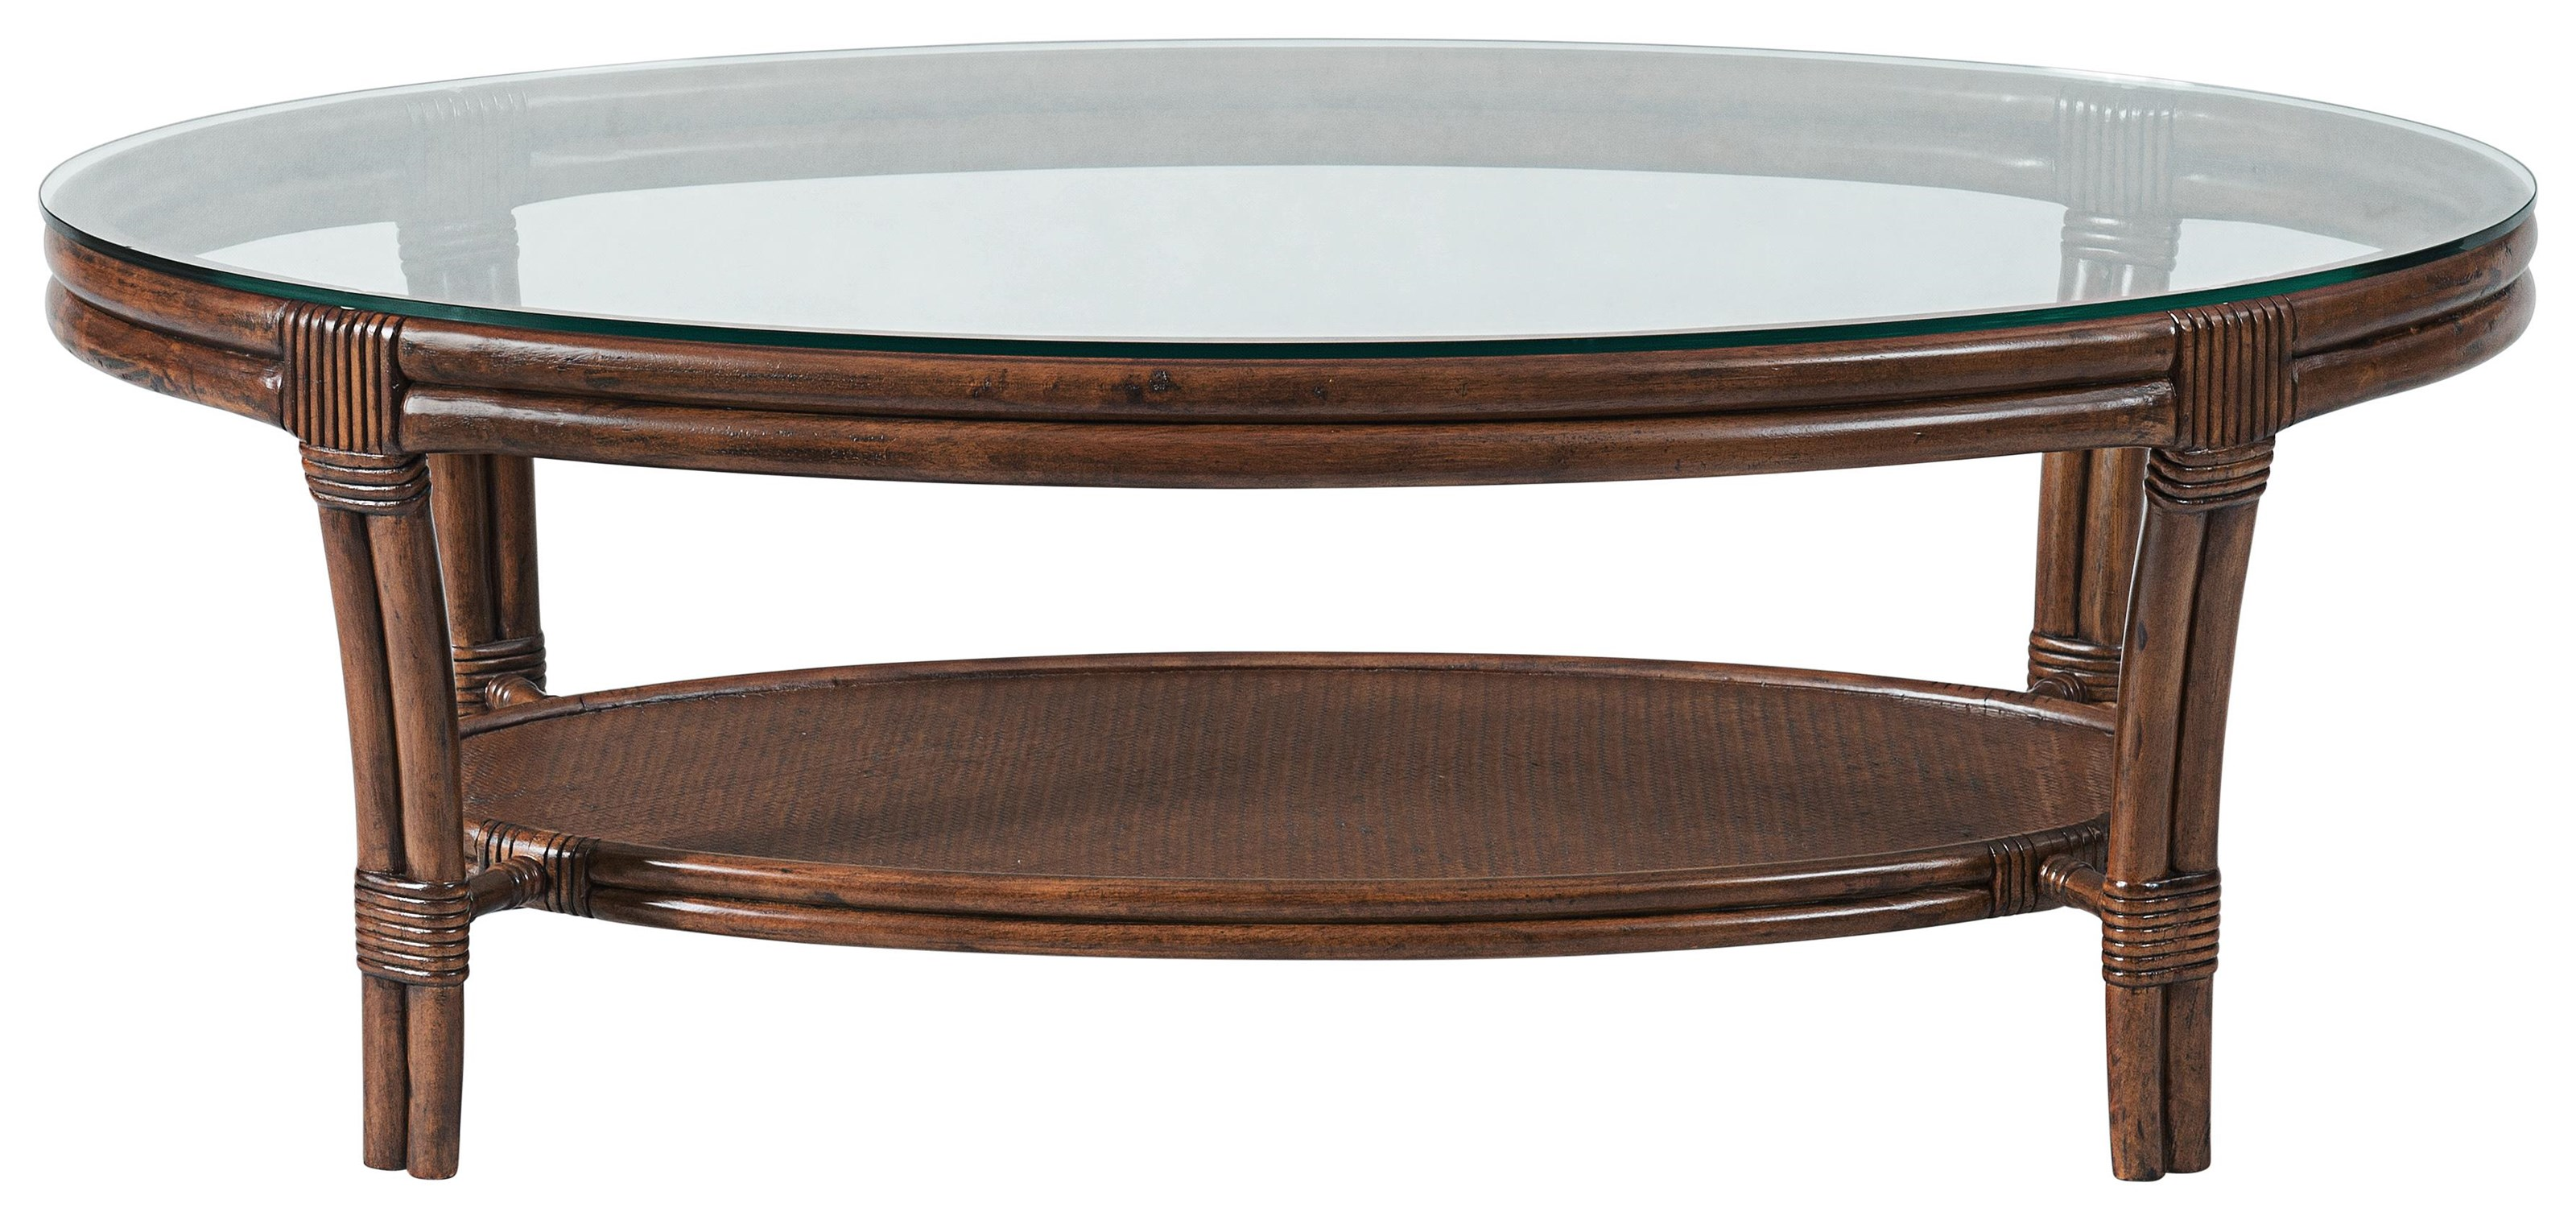 Tropical Breeze Oval Cocktail Table by Stillwater Furniture at Baer's Furniture